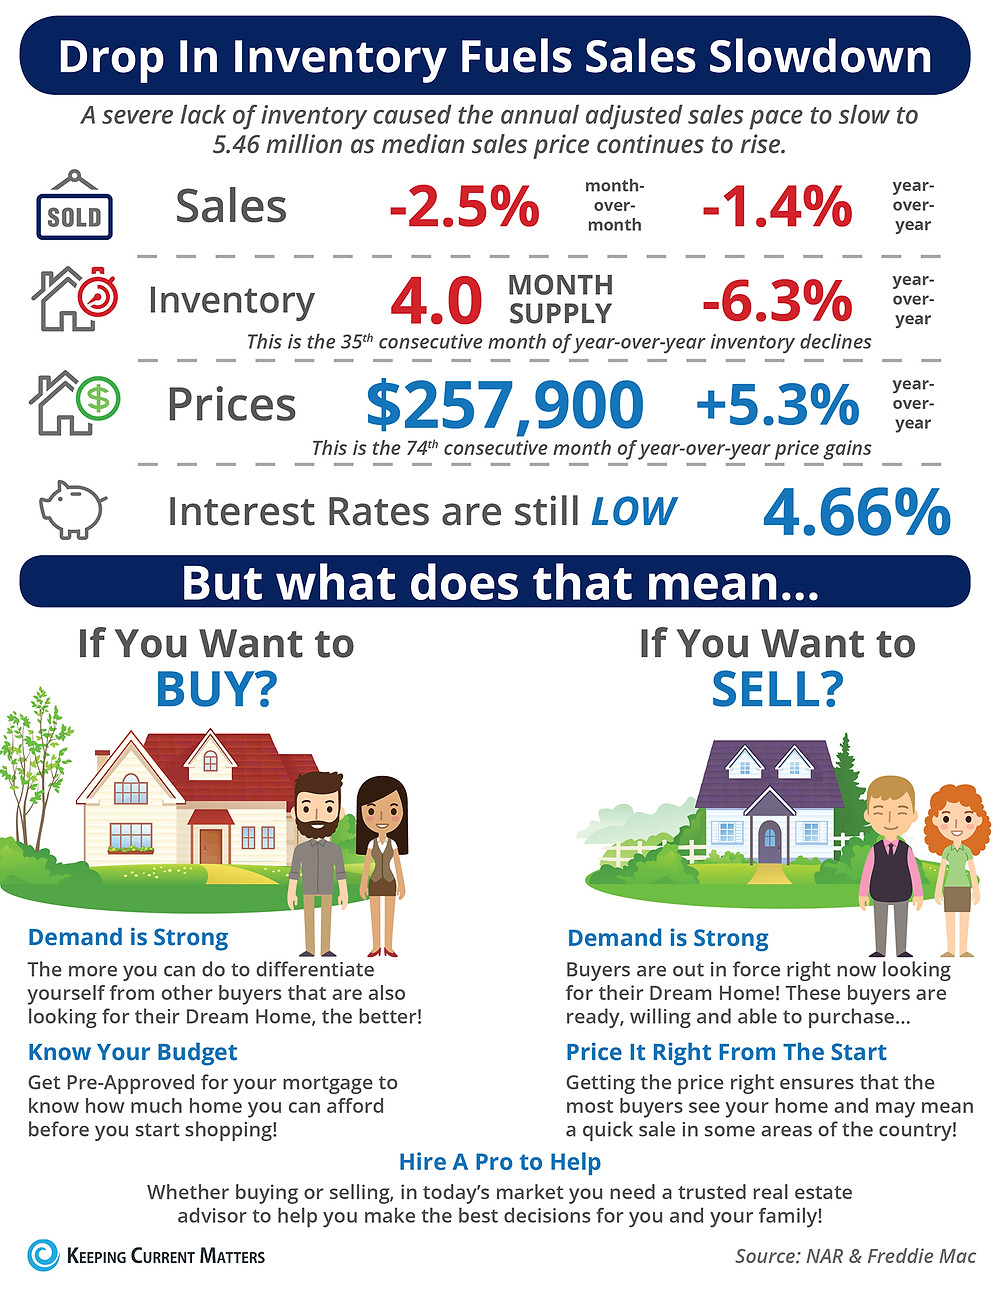 Drop in Inventory Fuels Sales Slowdown [INFOGRAPHIC]   Keeping Current Matters